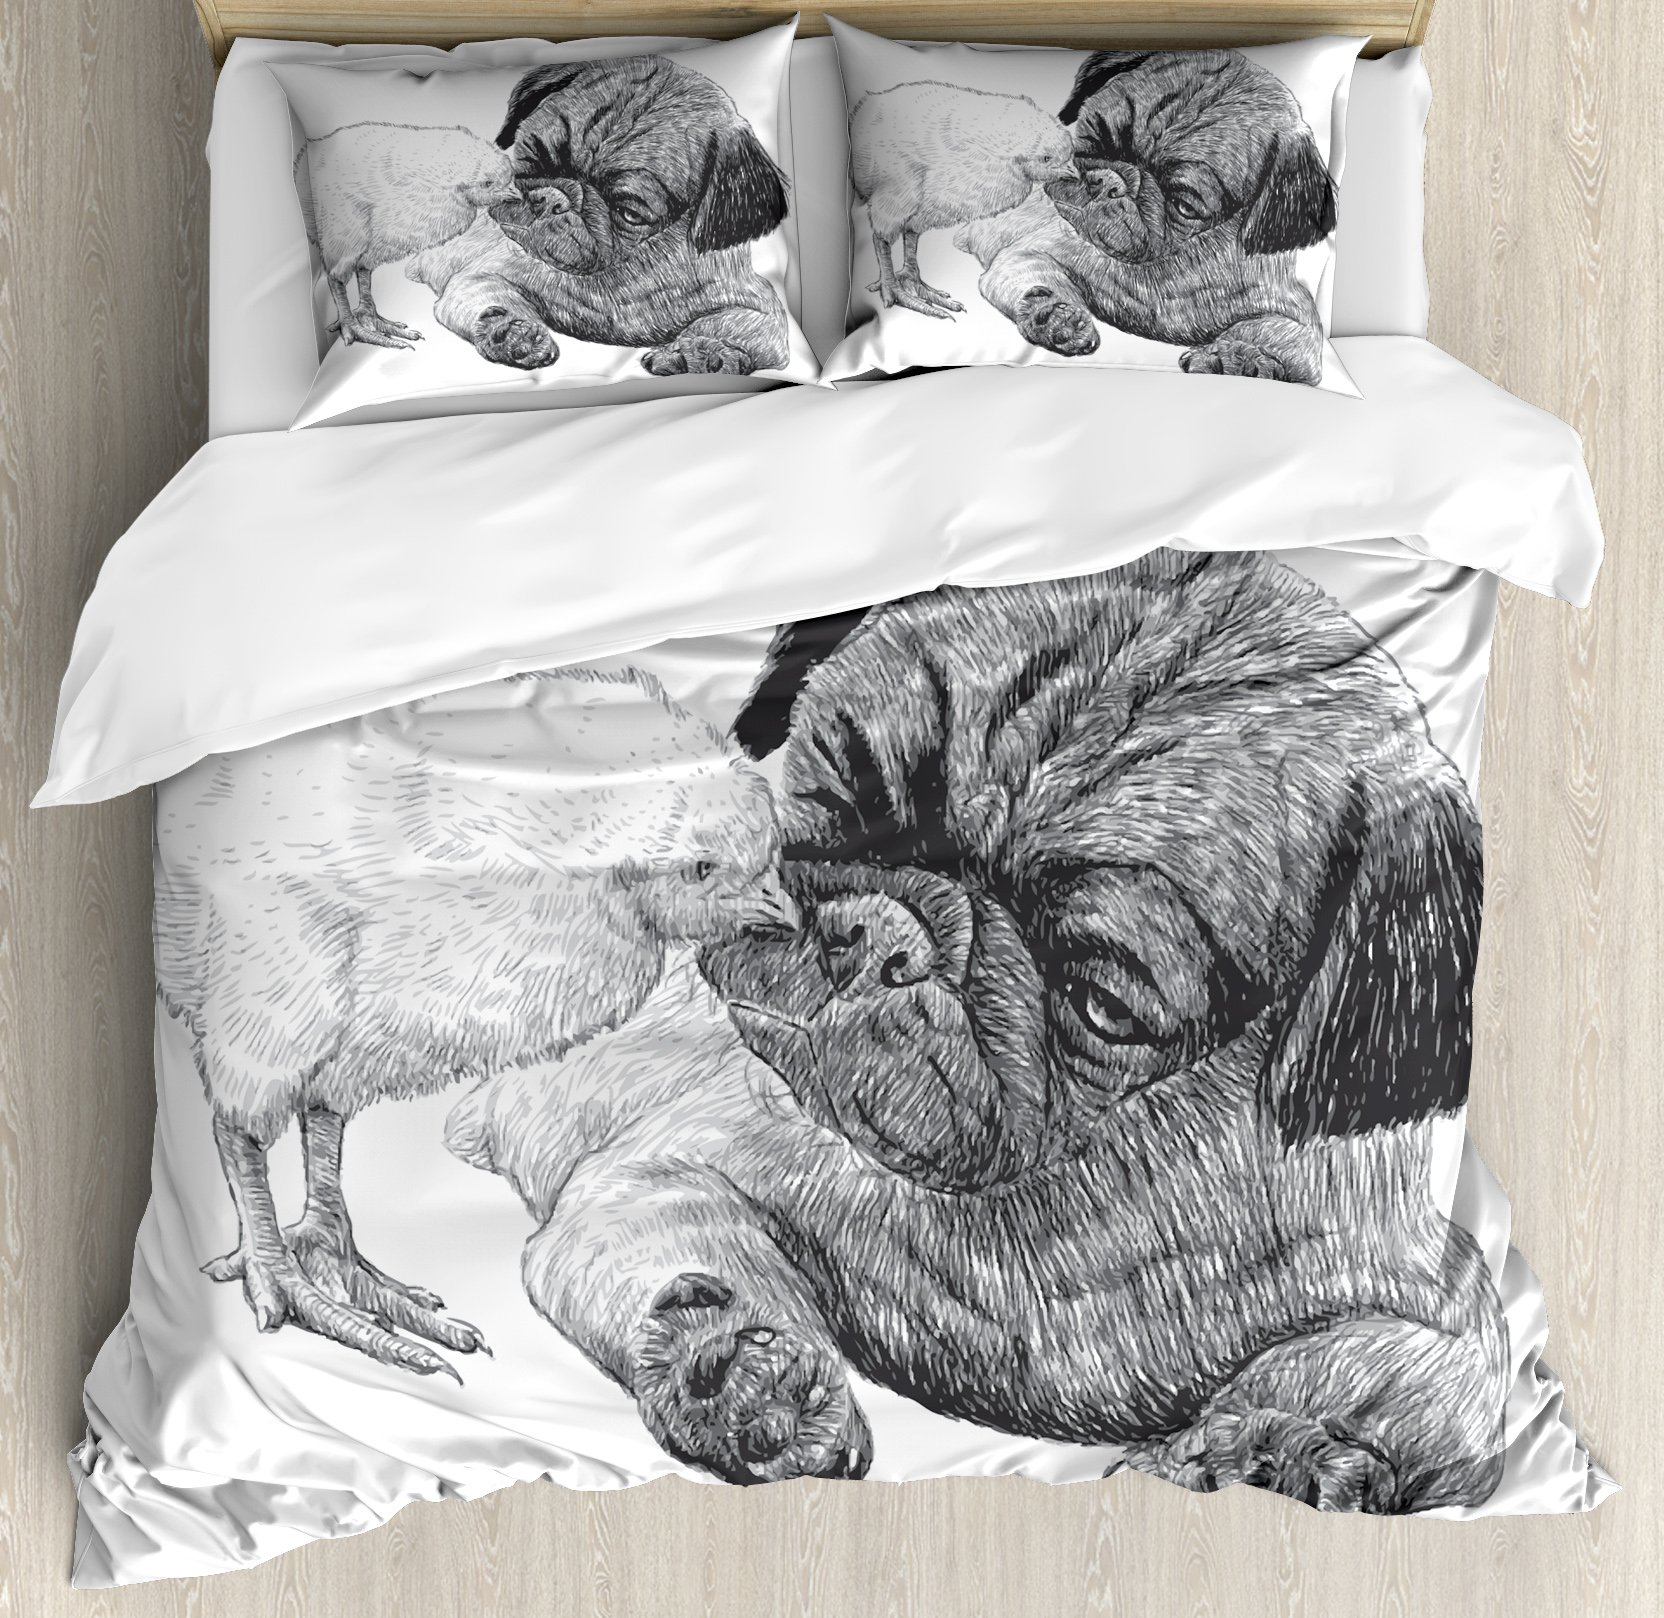 Pug King Size Duvet Cover Set by Ambesonne, Picture of a Pug and a Little Chick Drawn by Hand Love and Affection Between Animals, Decorative 3 Piece Bedding Set with 2 Pillow Shams, Black White